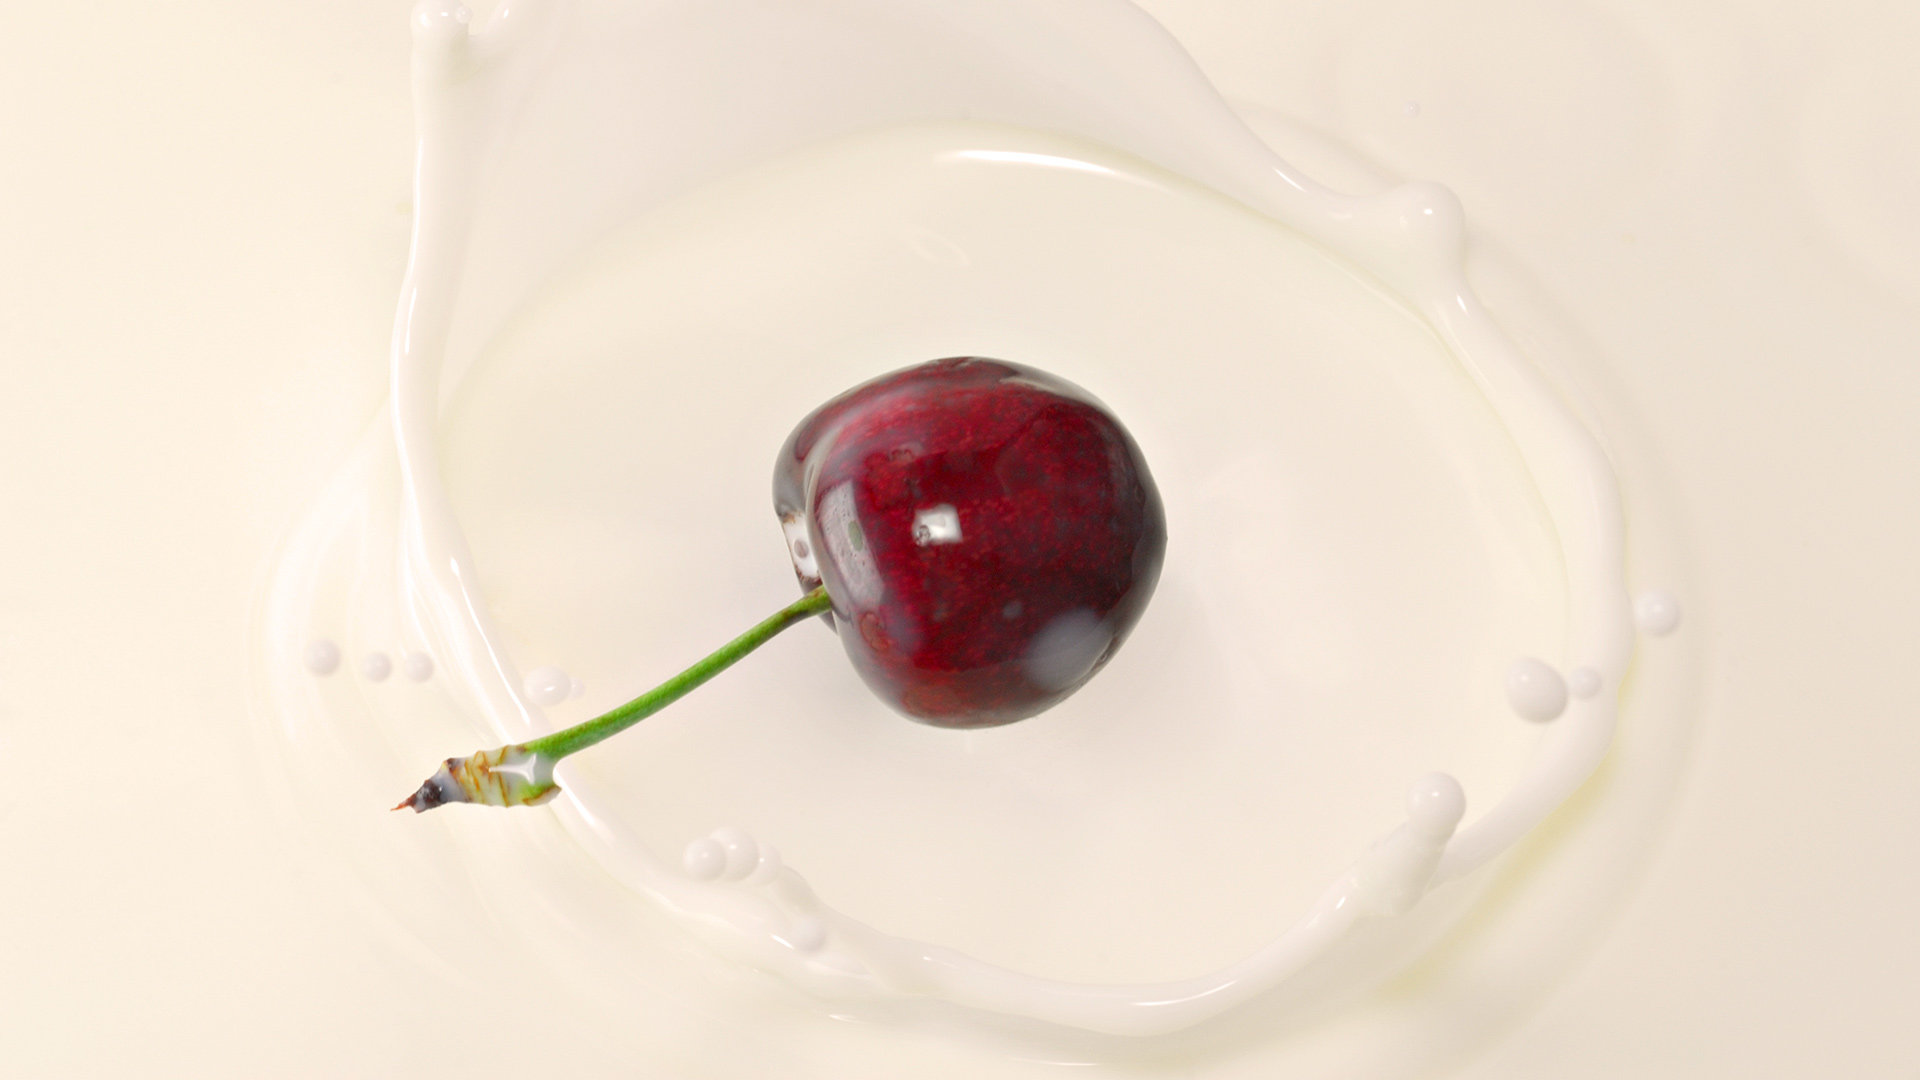 Free download Cherry background ID:141884 full hd 1080p for computer